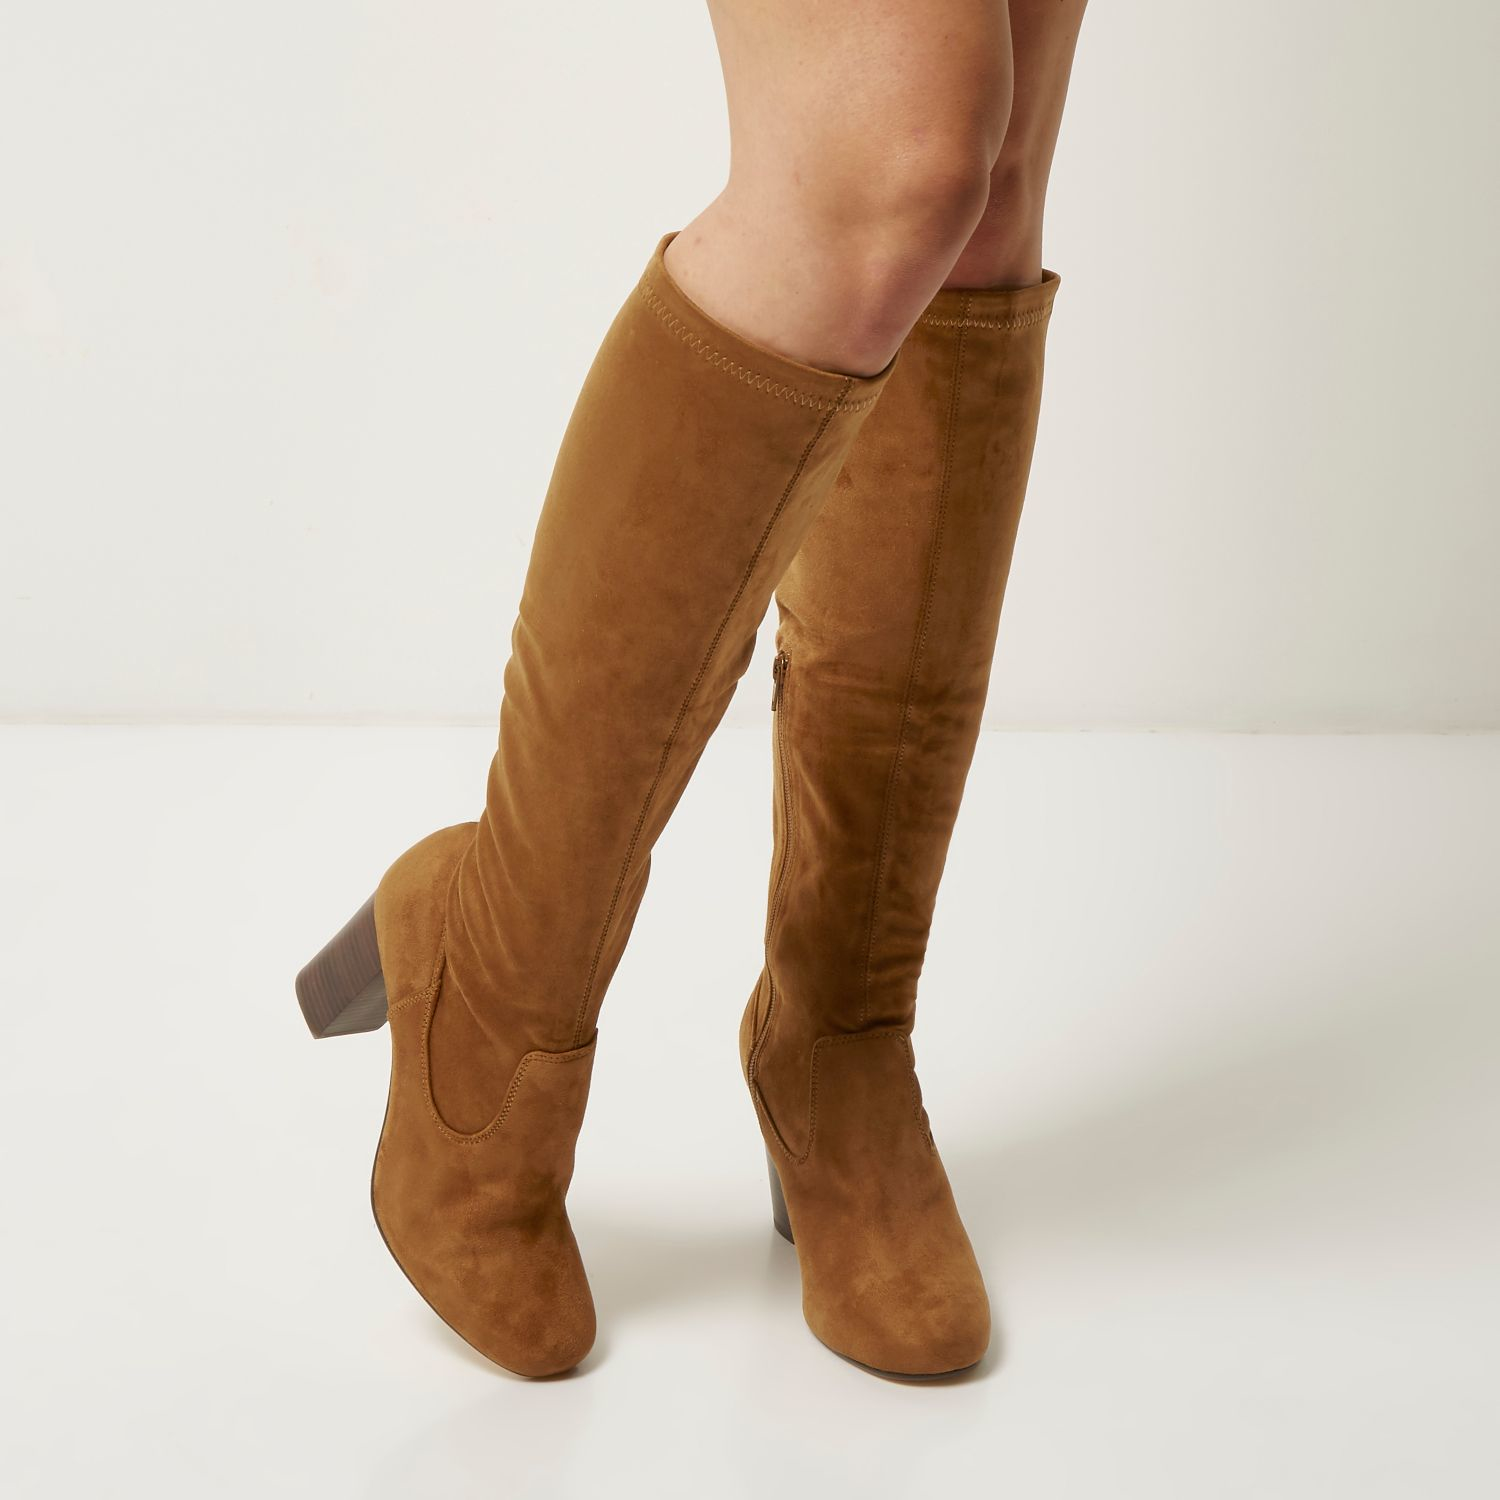 252346e59cd23 Lyst - River Island Tan Faux Suede Heeled Knee High Boots in Brown